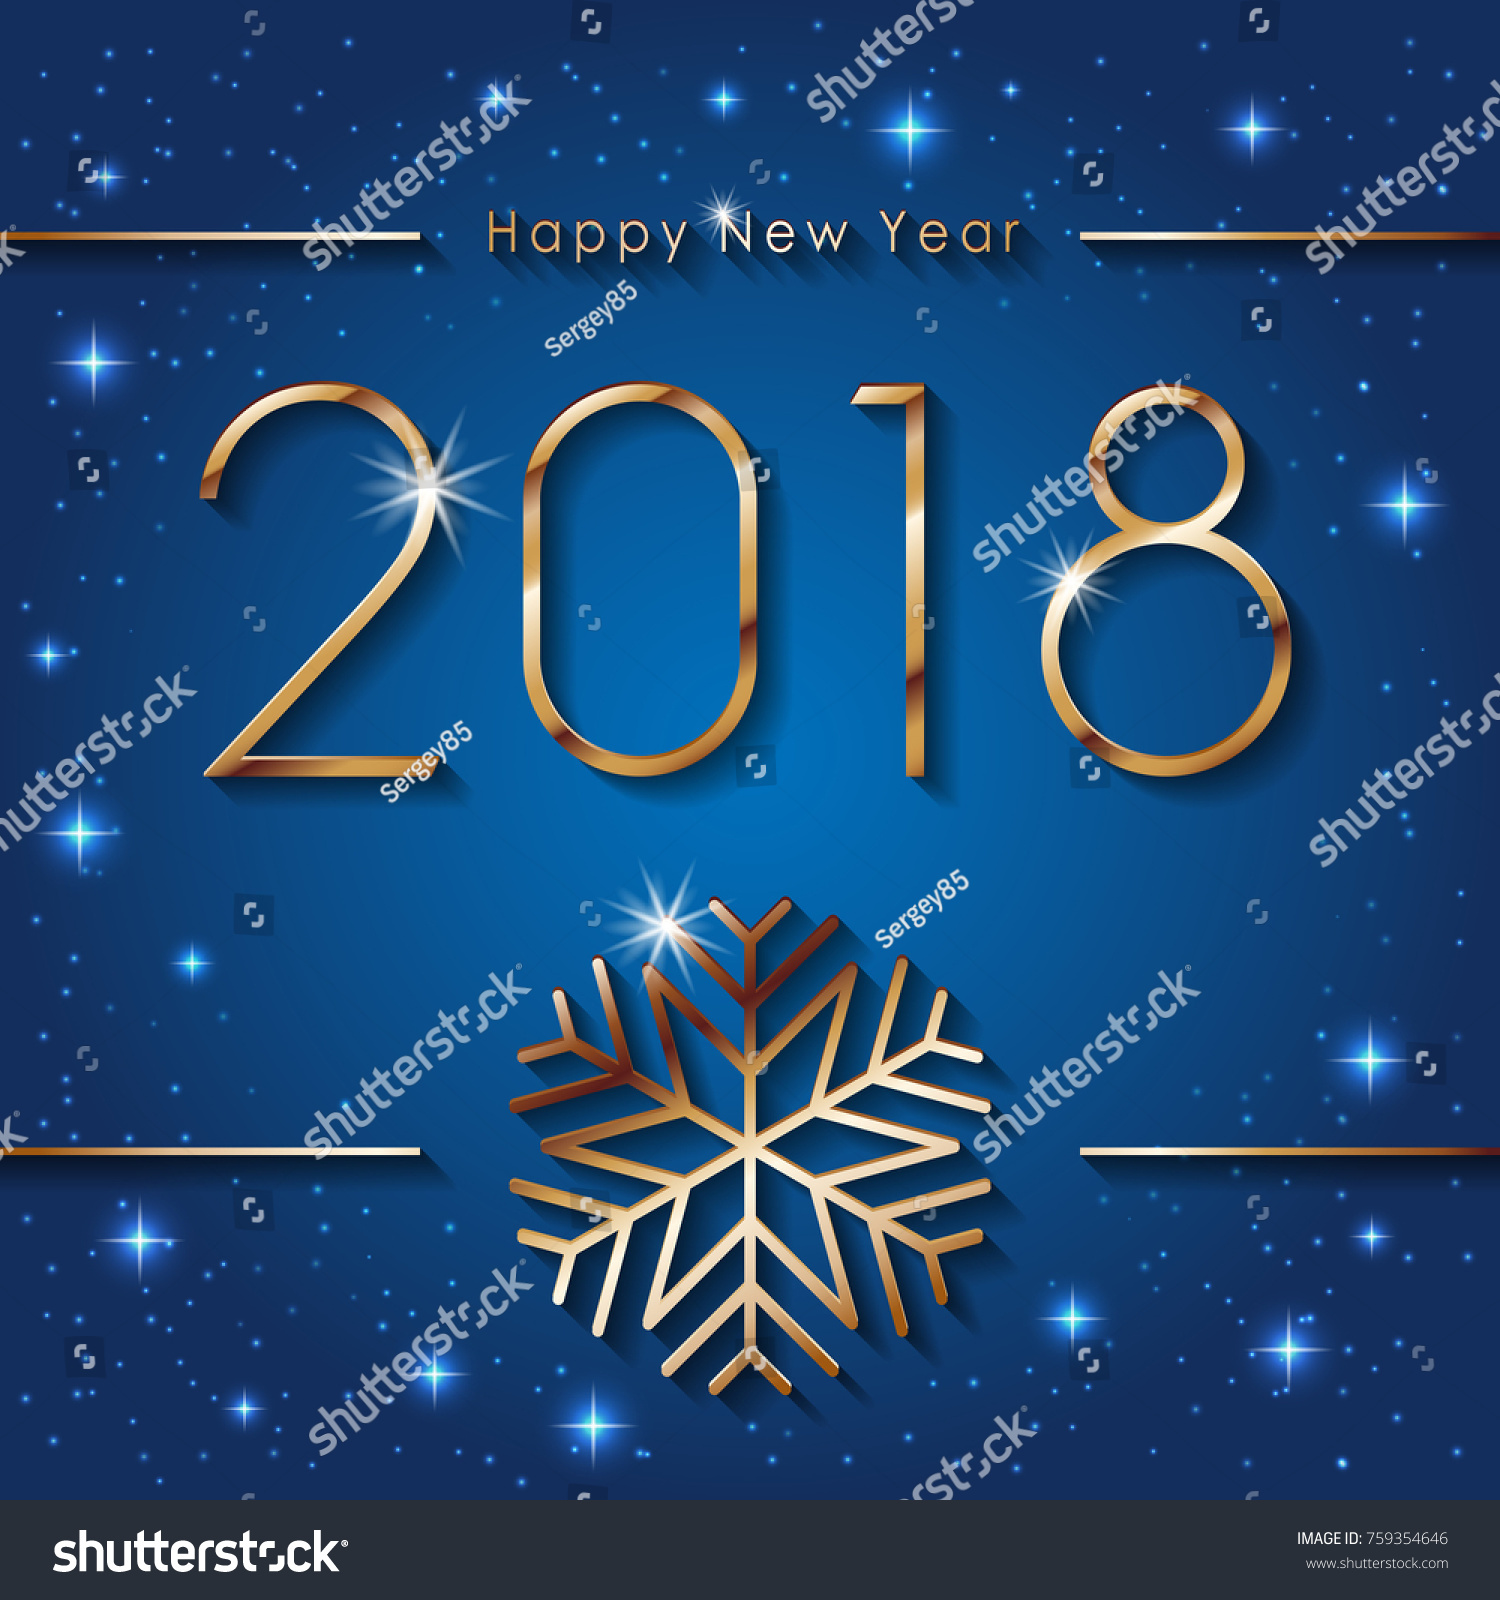 Happy new 2018 year seasons greetings stock vector royalty free happy new 2018 year seasons greetings banner with golden snowflake colorful winter background m4hsunfo